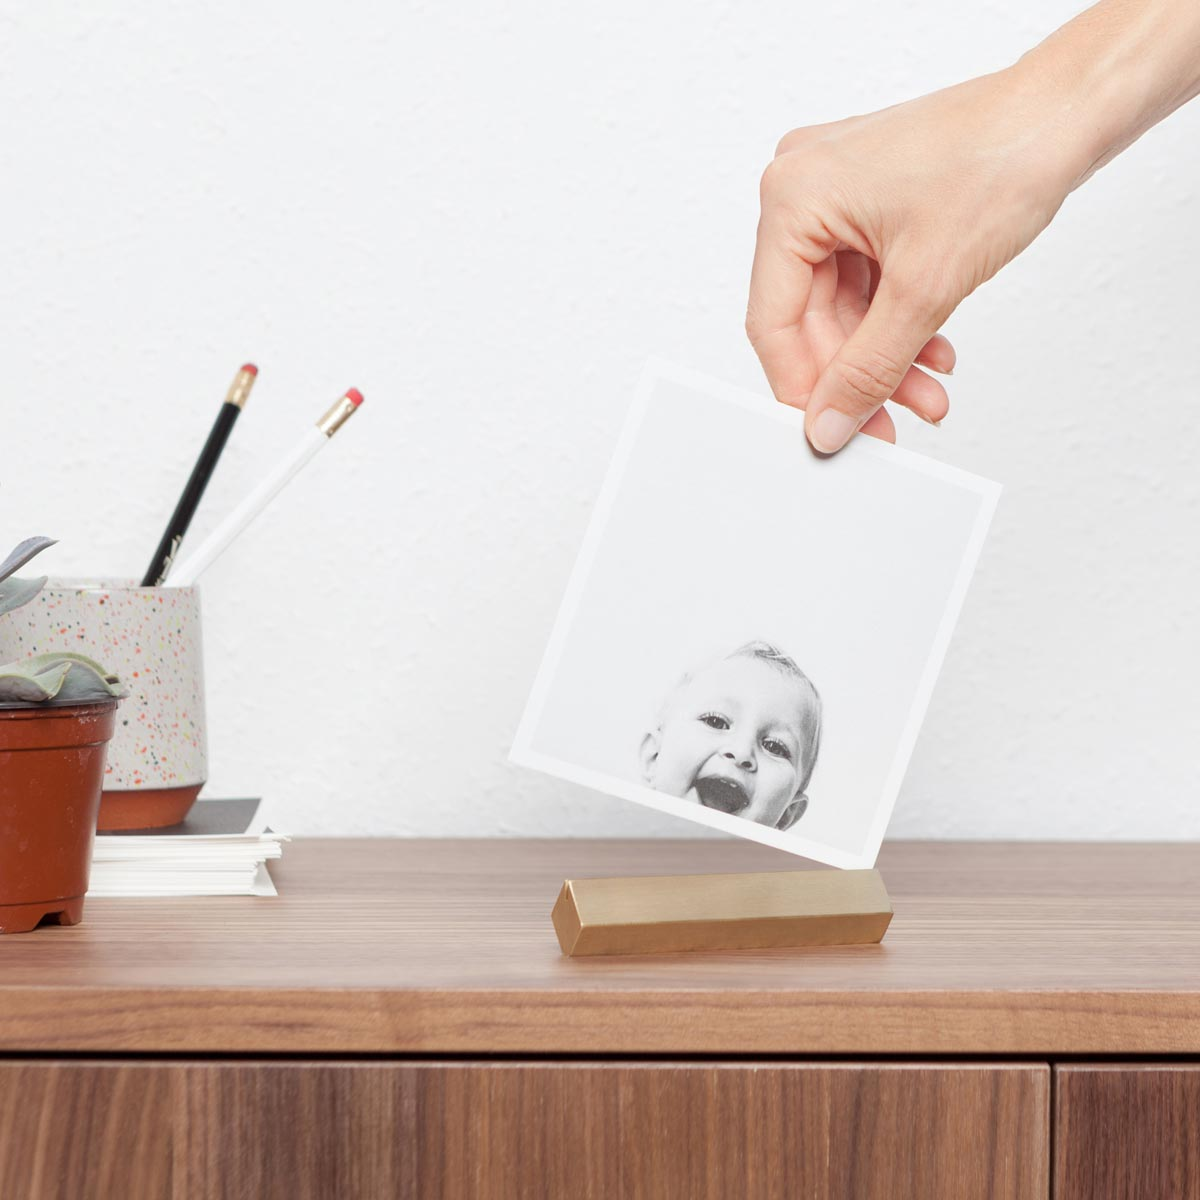 7 square print display hacks to try at home artifact uprising prints meet your best match display your photos with our go to print accessory the geo rail crafted by our friends at yield this substantial yet